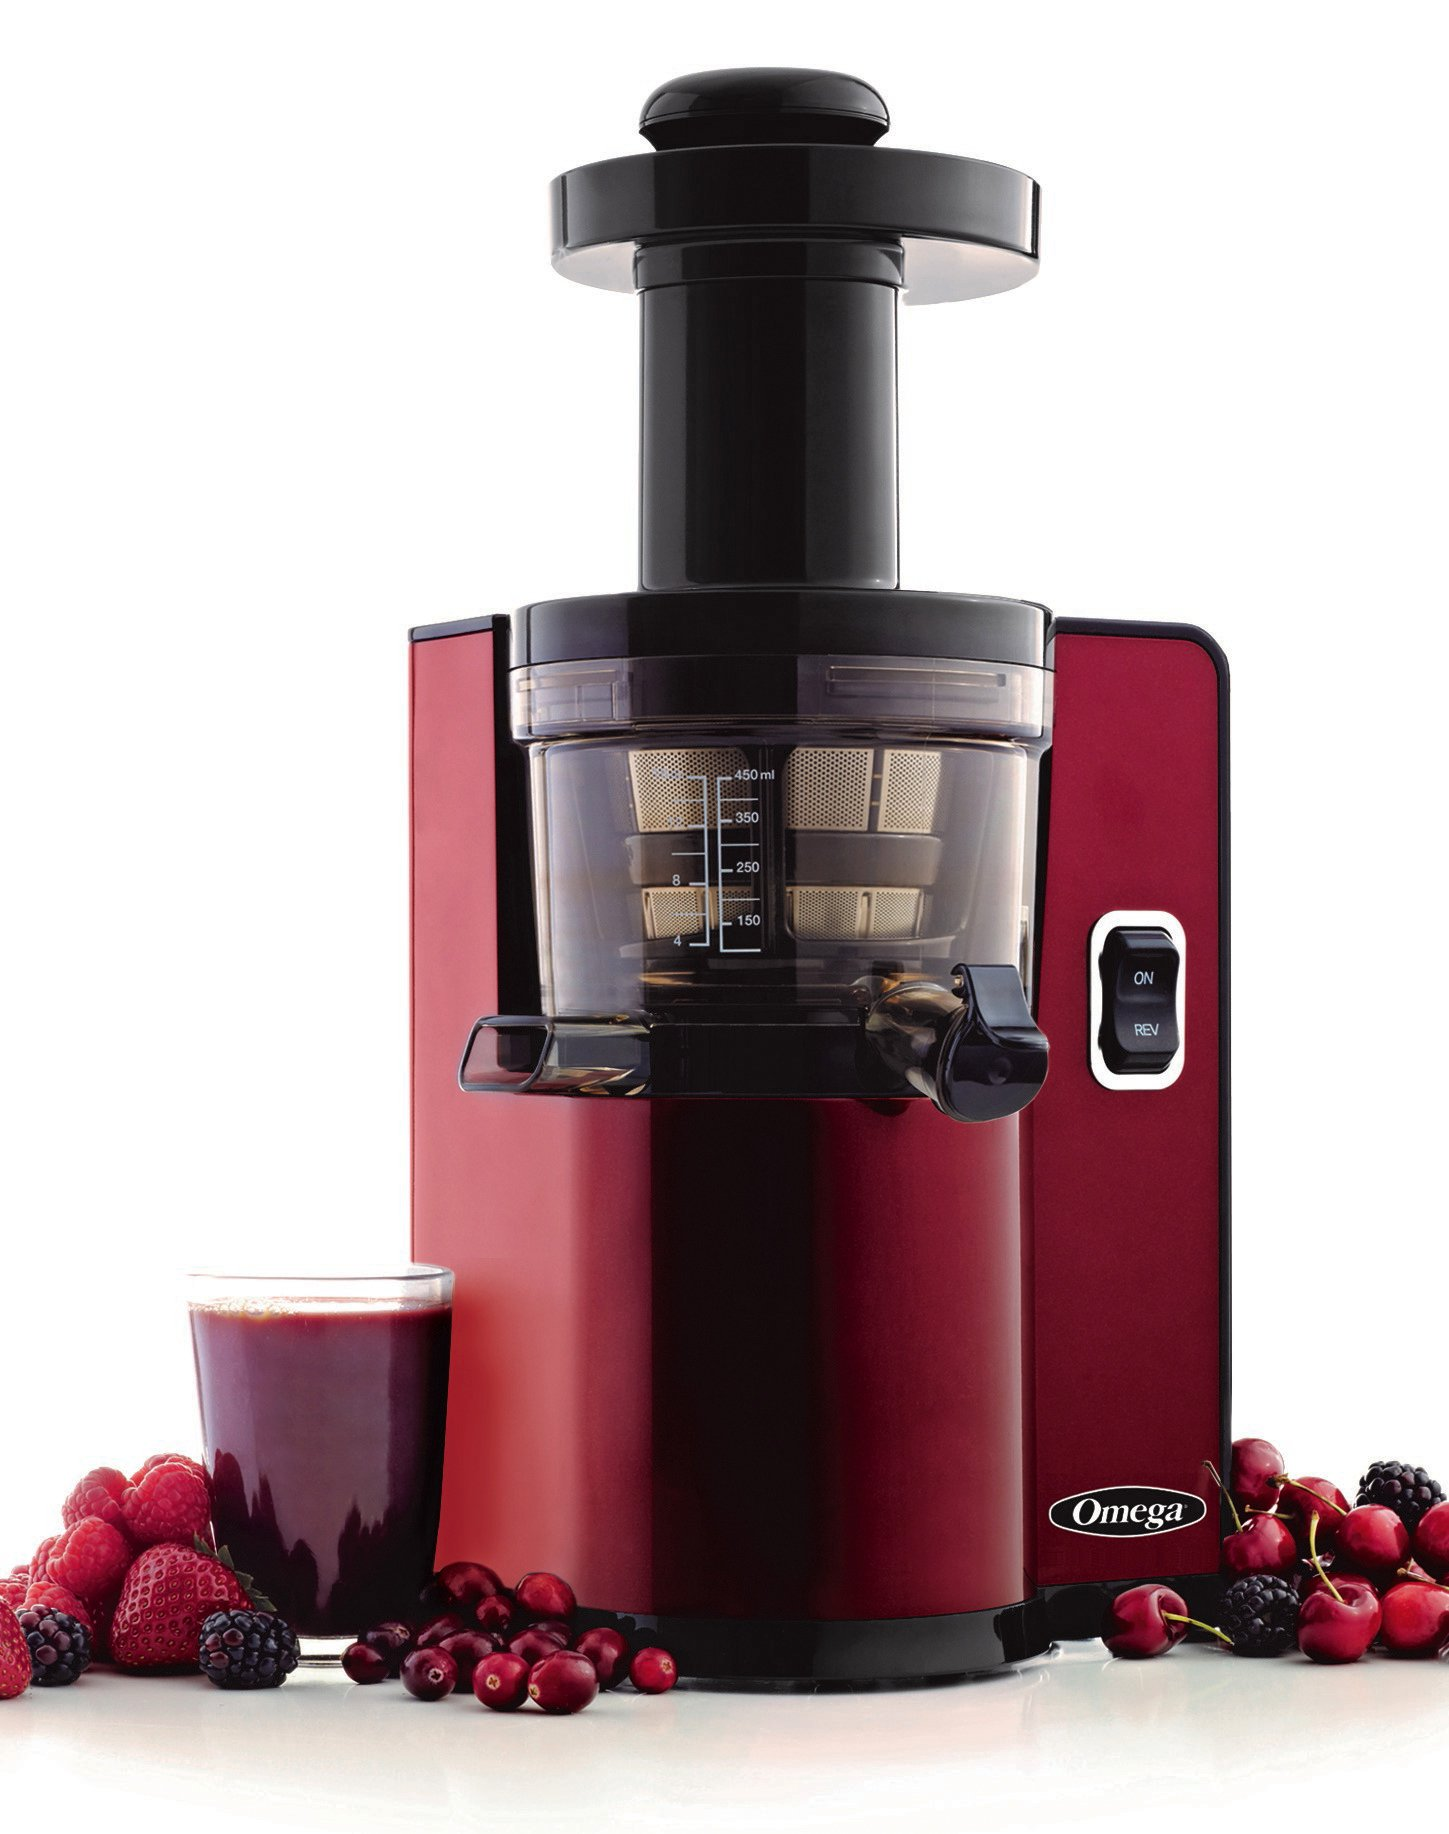 Omega VSJ843QR Vertical Slow Masticating Juicer Makes Continuous Fresh Fruit and Vegetable Juice at 43 Revolutions per Minute Features Compact Design Automatic Pulp Ejection, 150-Watt, Red by Omega